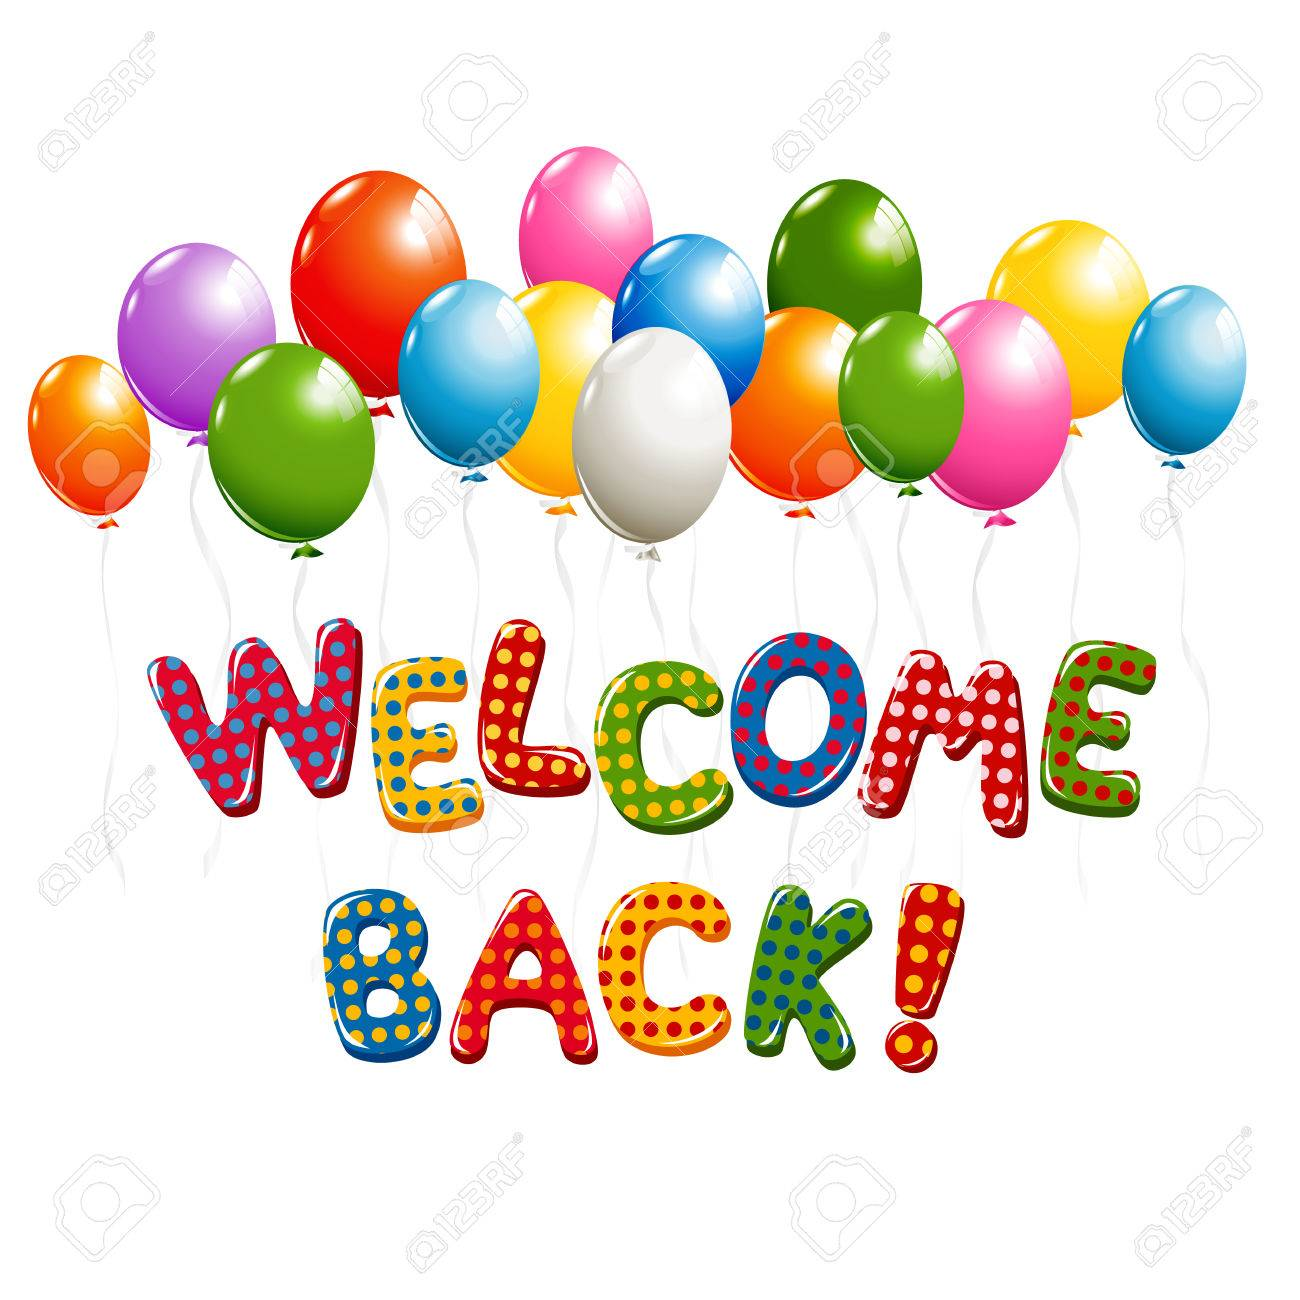 This is the image for the news article titled Welcome Back